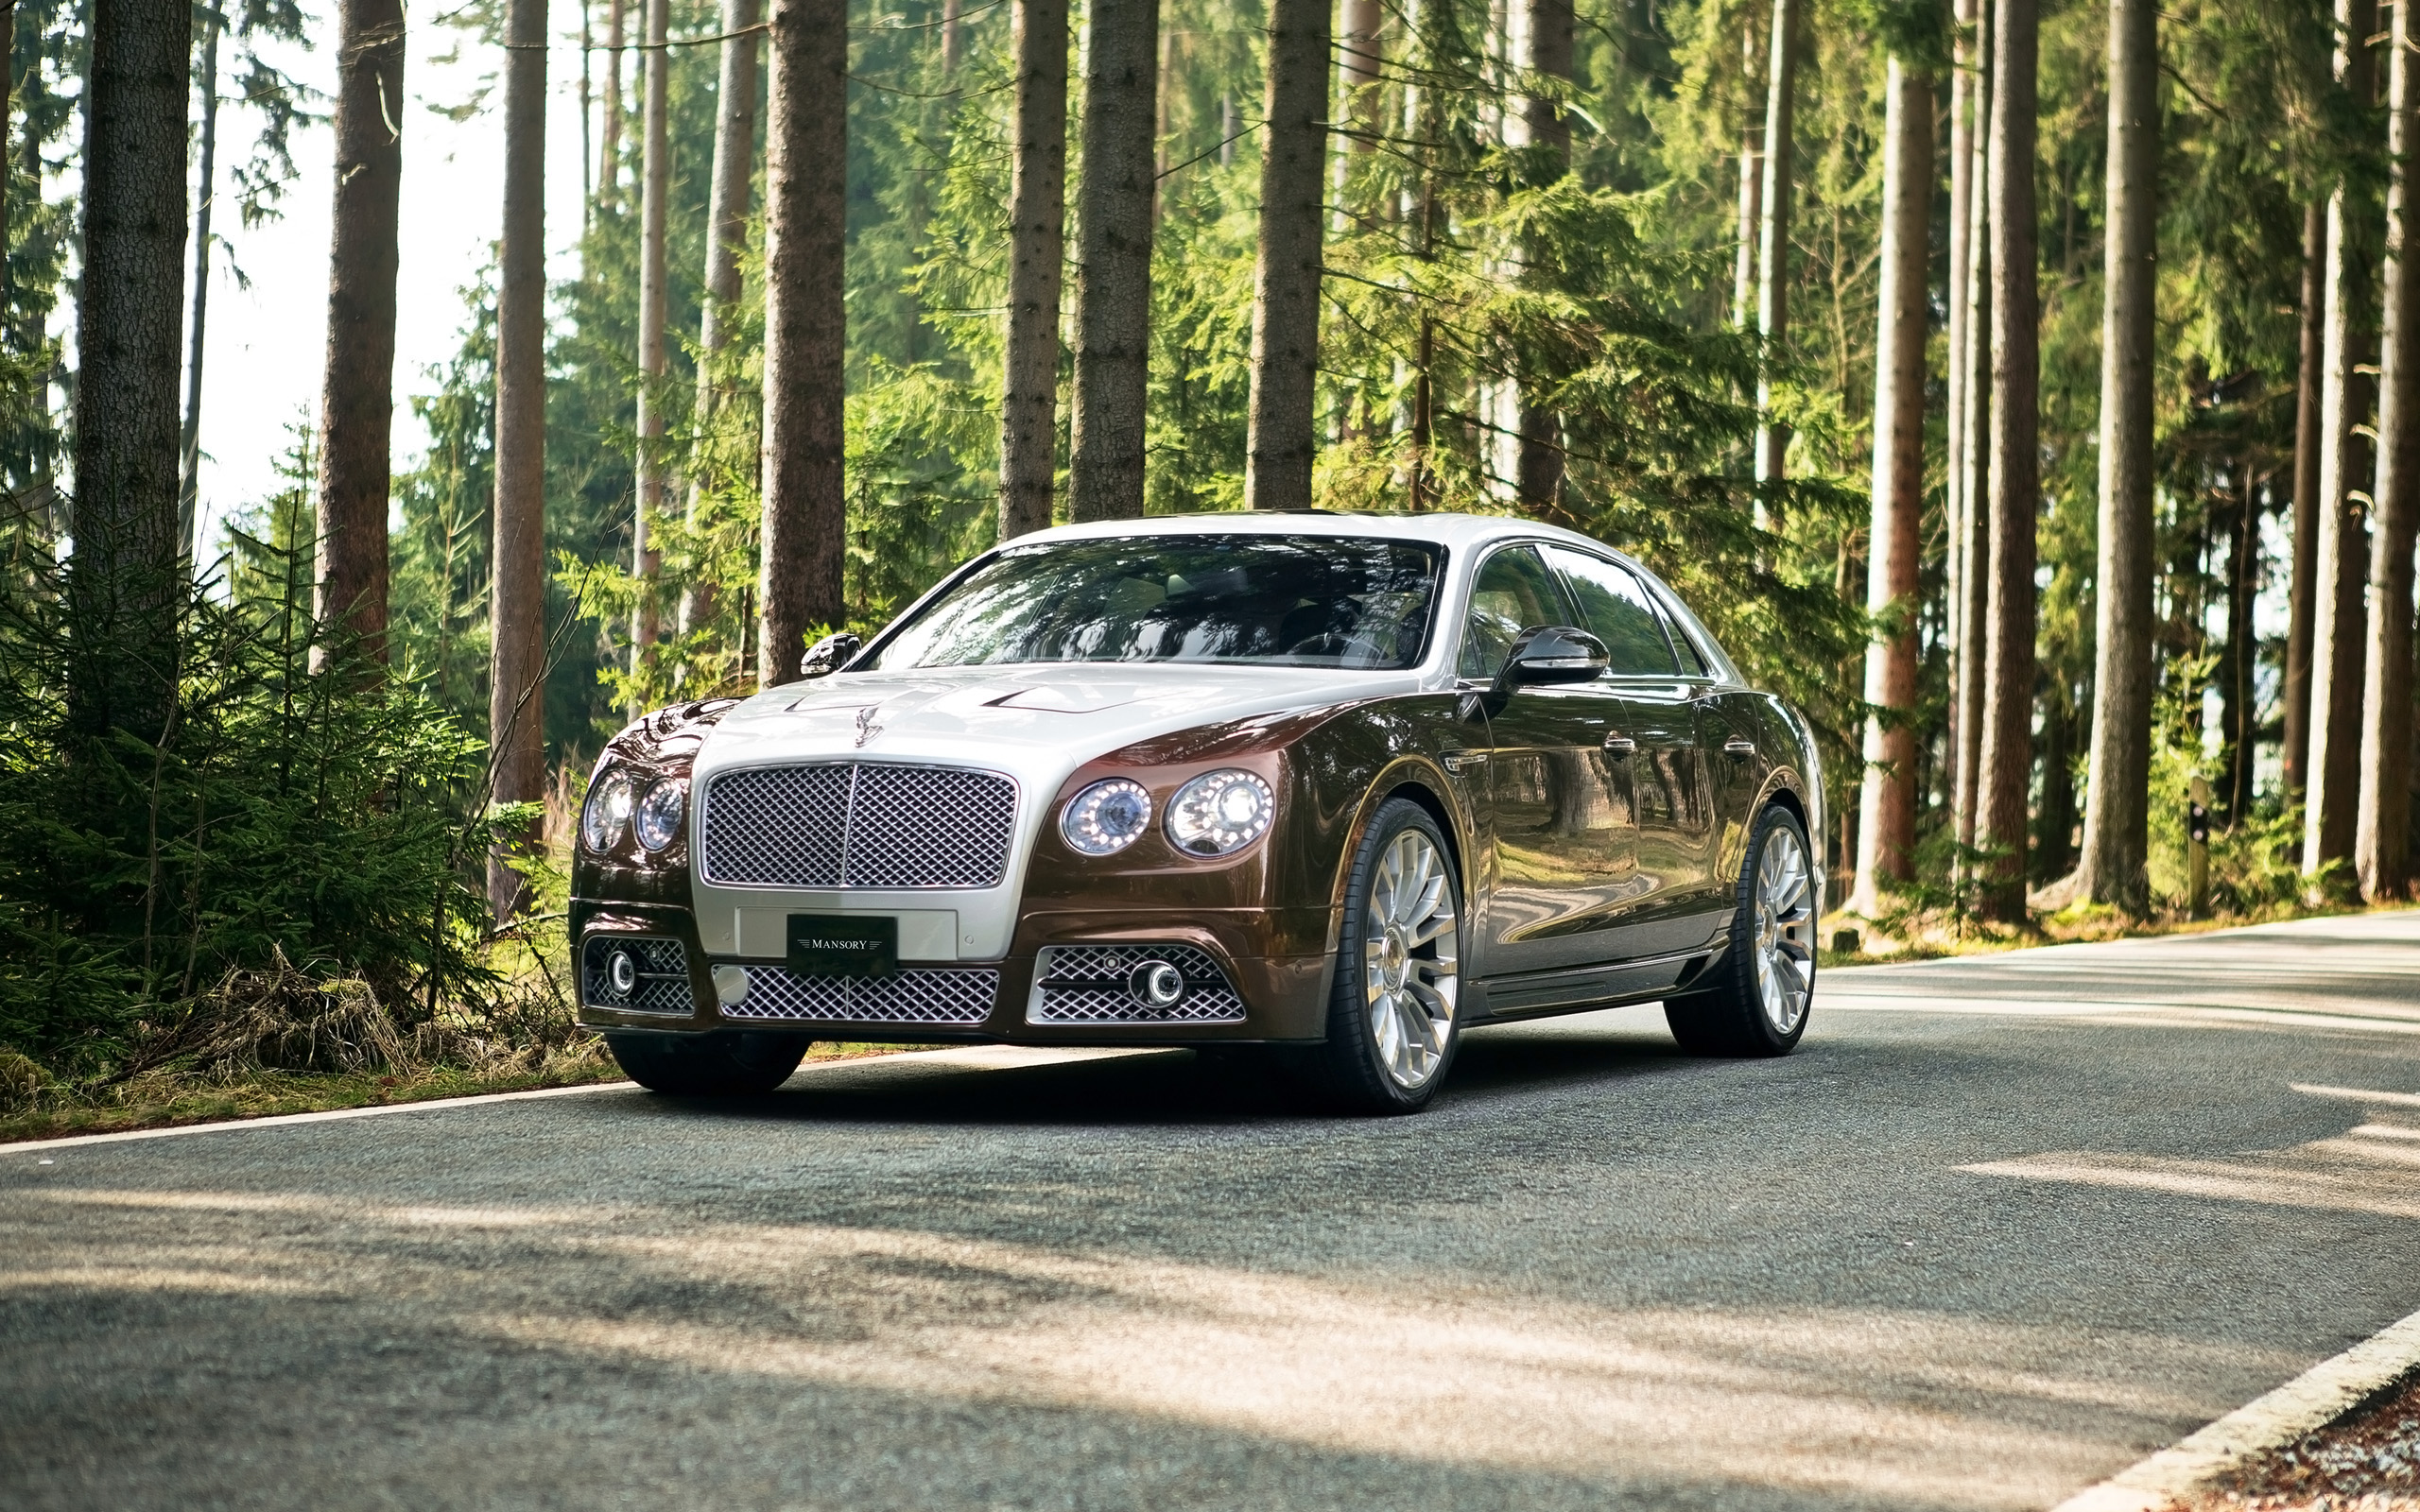 2014 Mansory Bentley Flying Spur Wallpaper Hd Car Wallpapers Id 4270